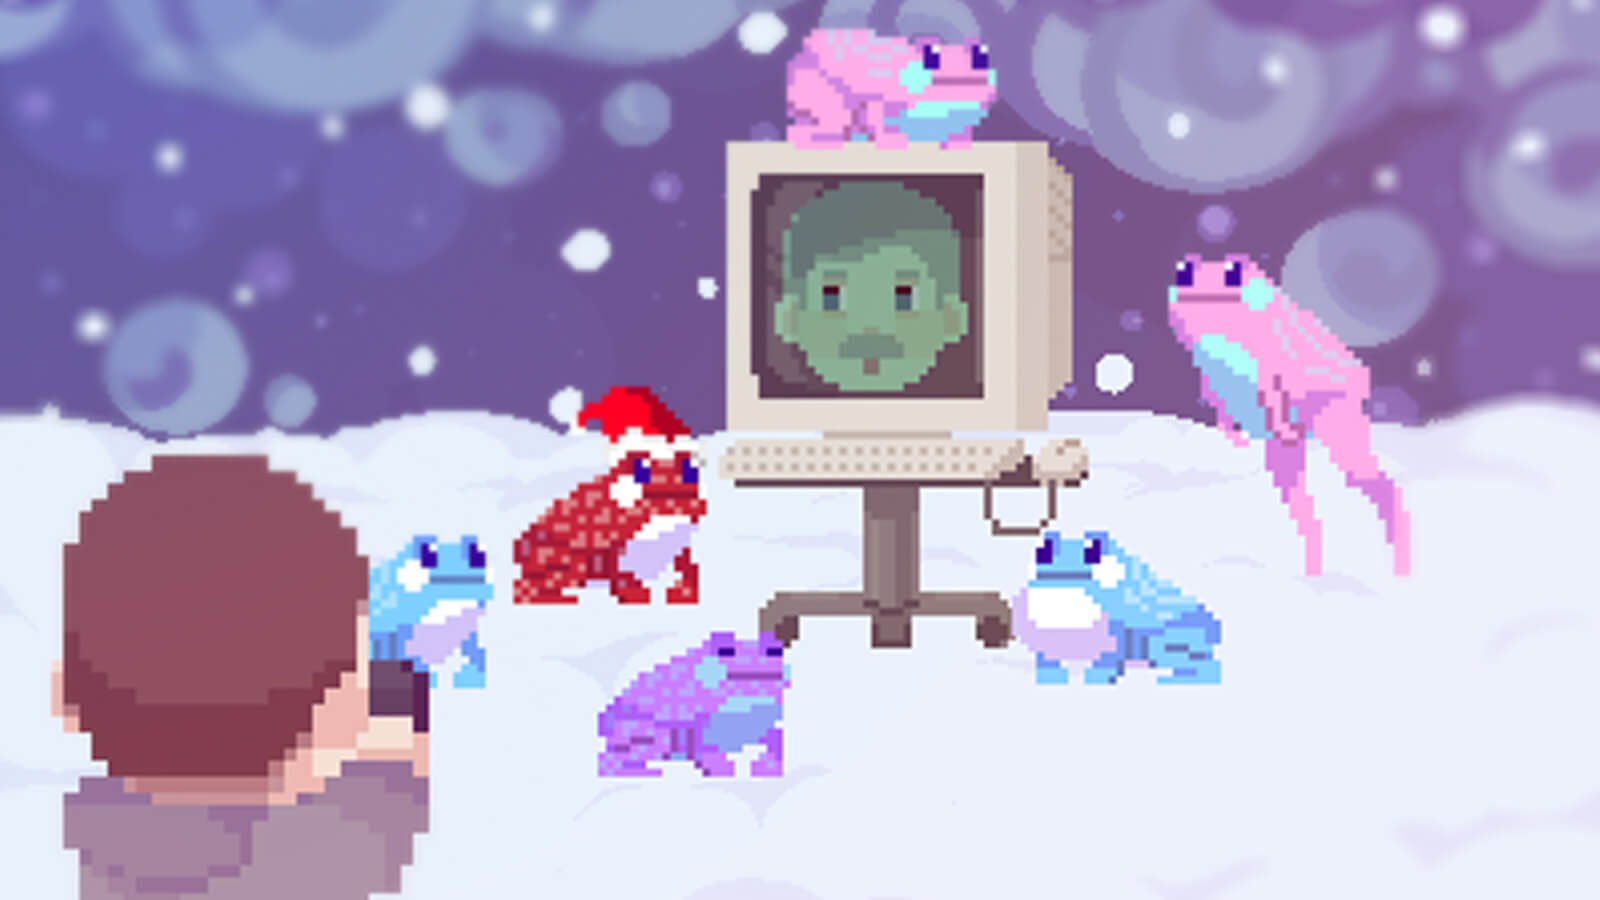 A man shoots a picture of frogs gathered around a computer with a mustached man's face on it in the snow.